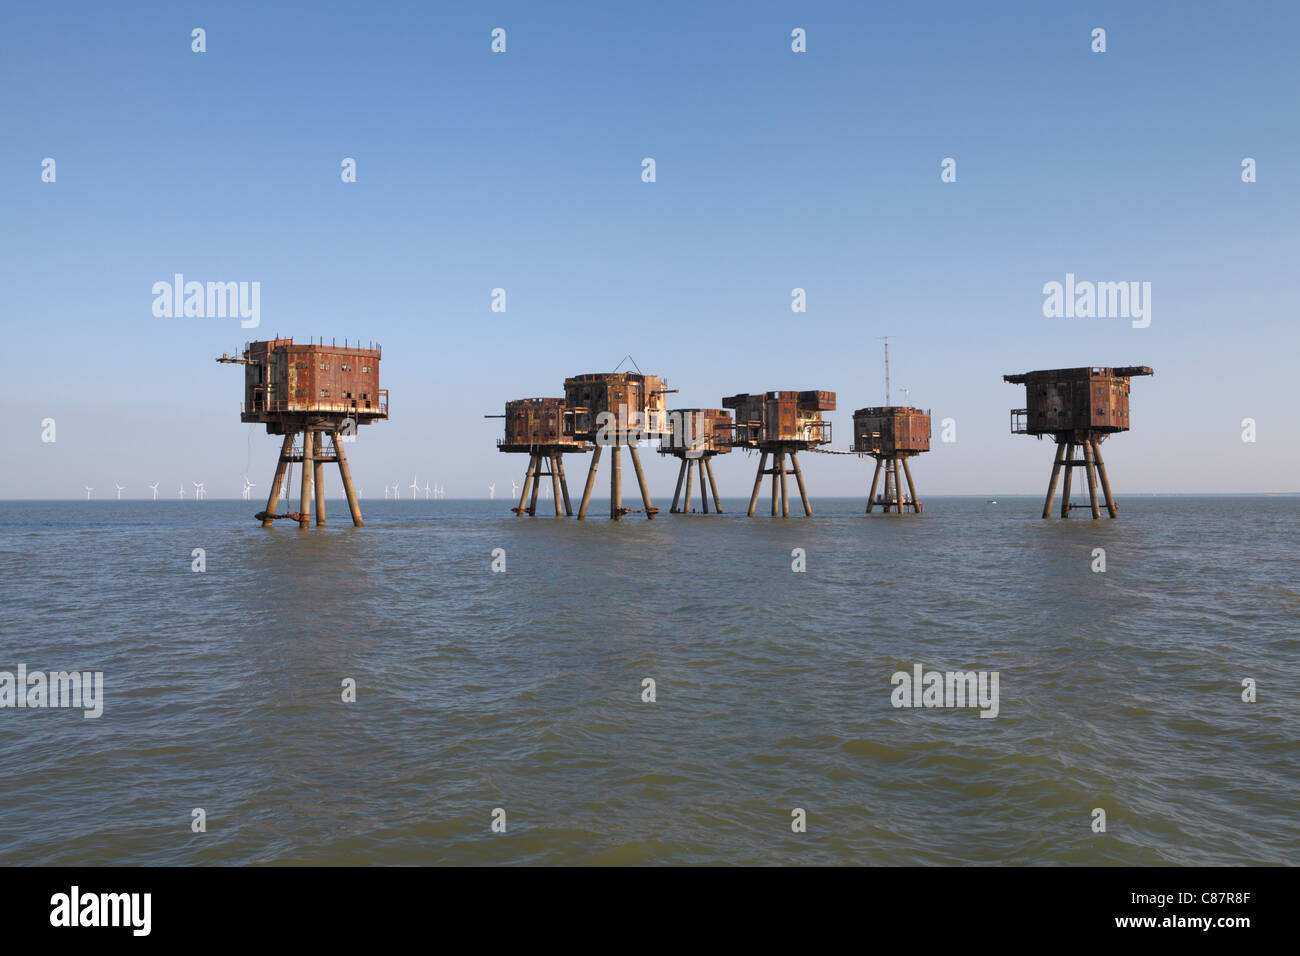 Maunsell sea forts. Red Sands sea fort Thames estuary, now abandoned. The Kentish flats windfarm is just behind - Stock Image